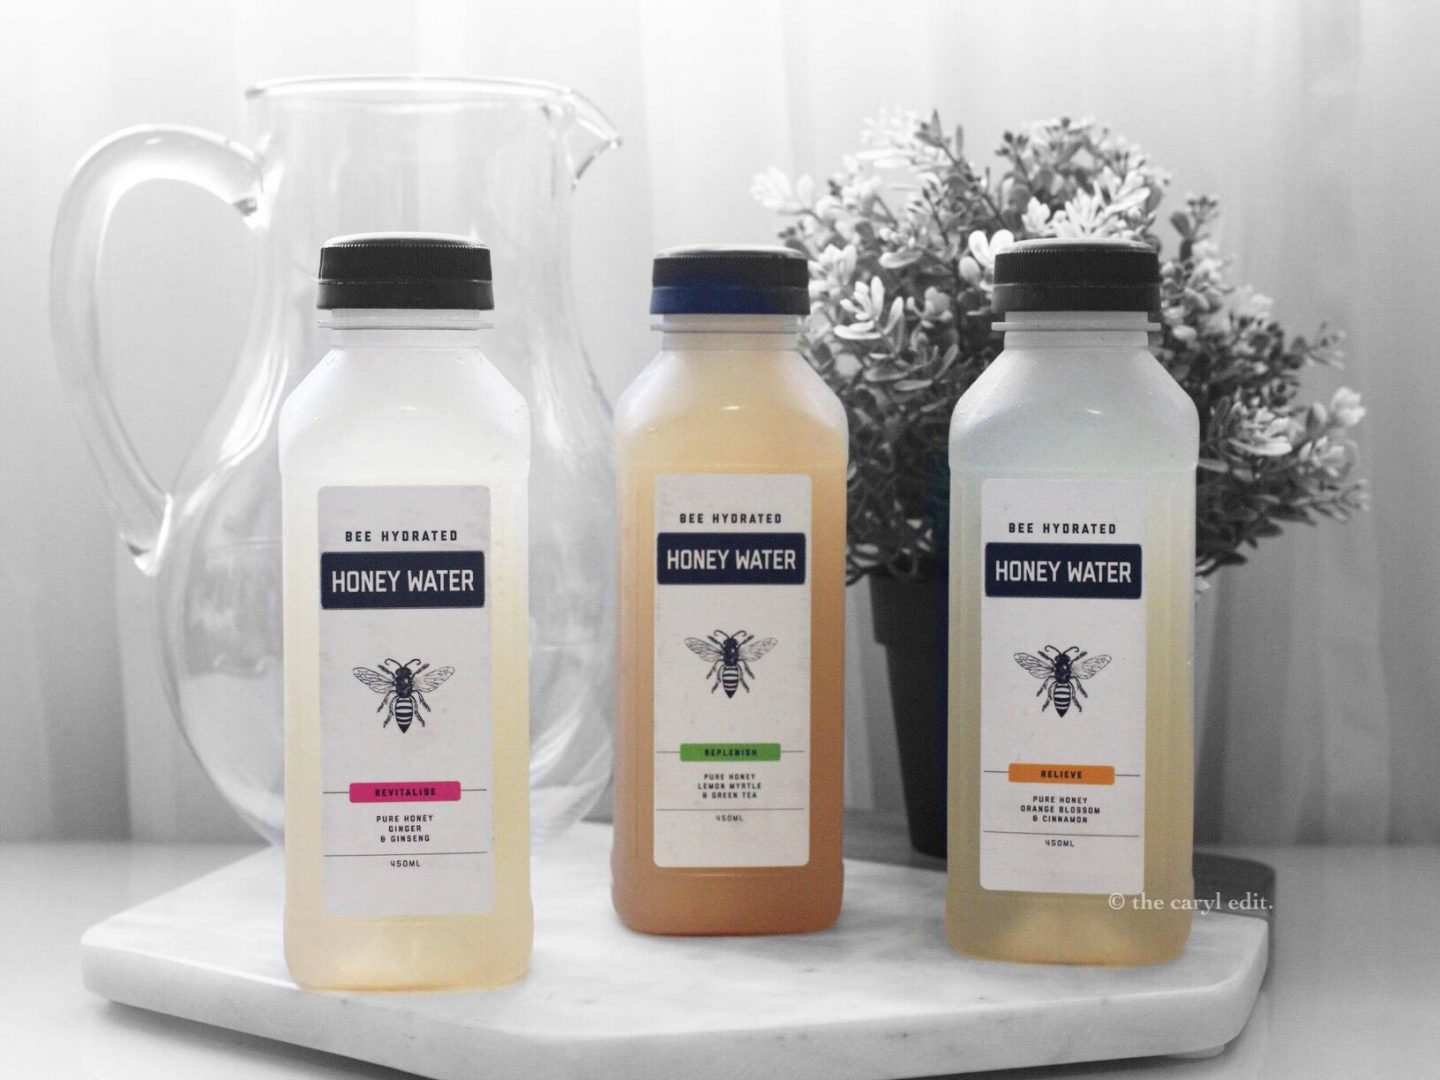 Revitalise, Relieve & Replenish With BEE HYDRATED Honey Water